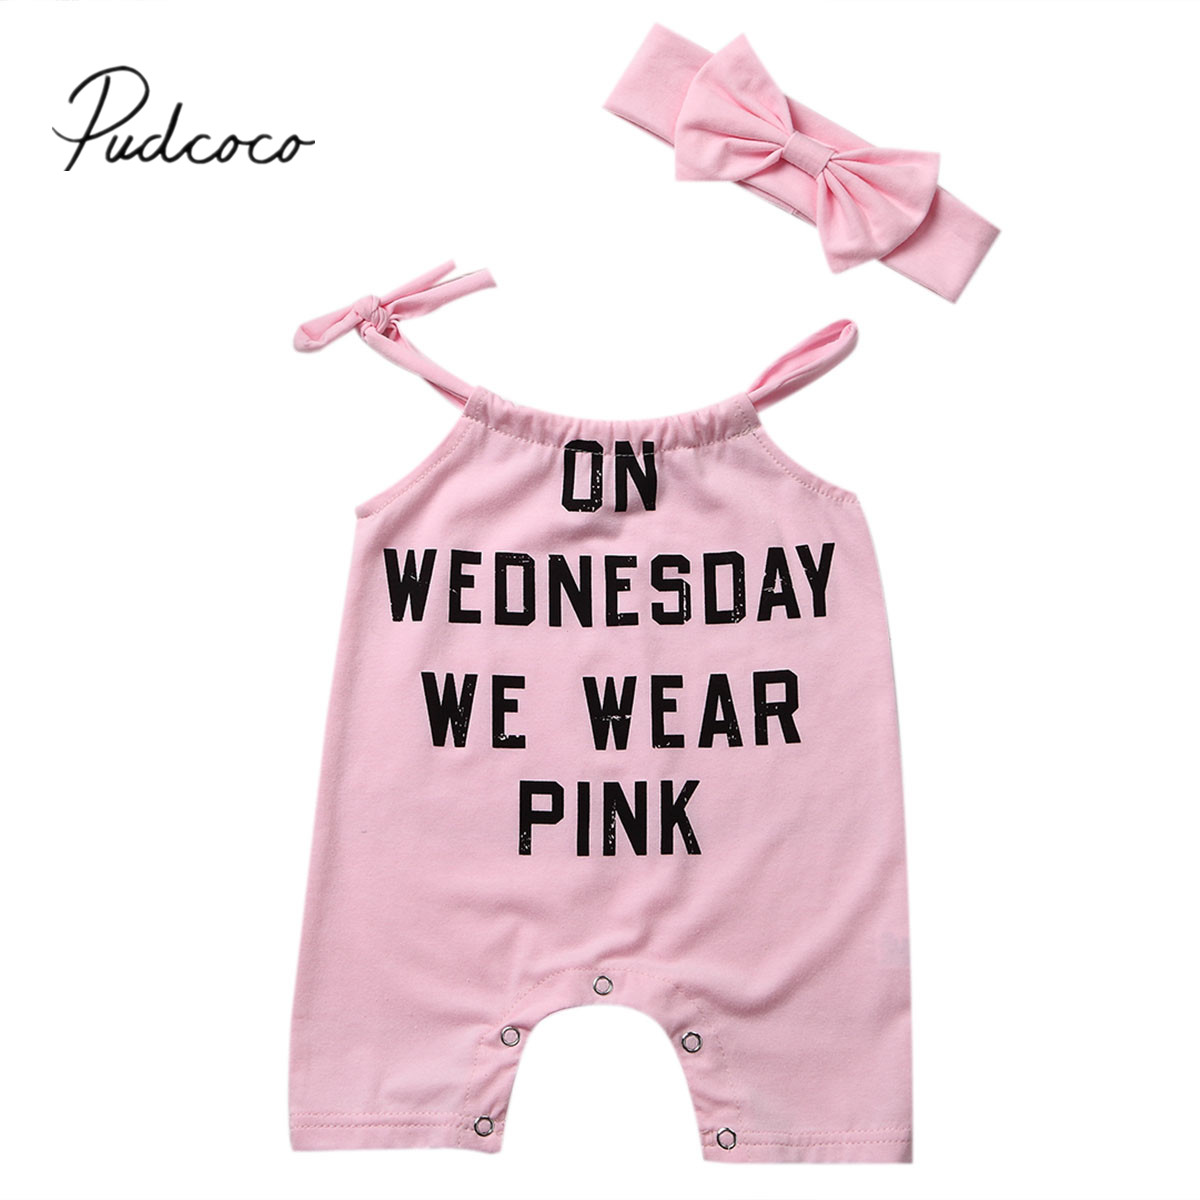 2018 Brand New 2PCS Pink Newborn Baby Girls Romper Summer Sleeveless Letter Cotton Jumpsuit +Headband Outfits Sunsuit Clothes